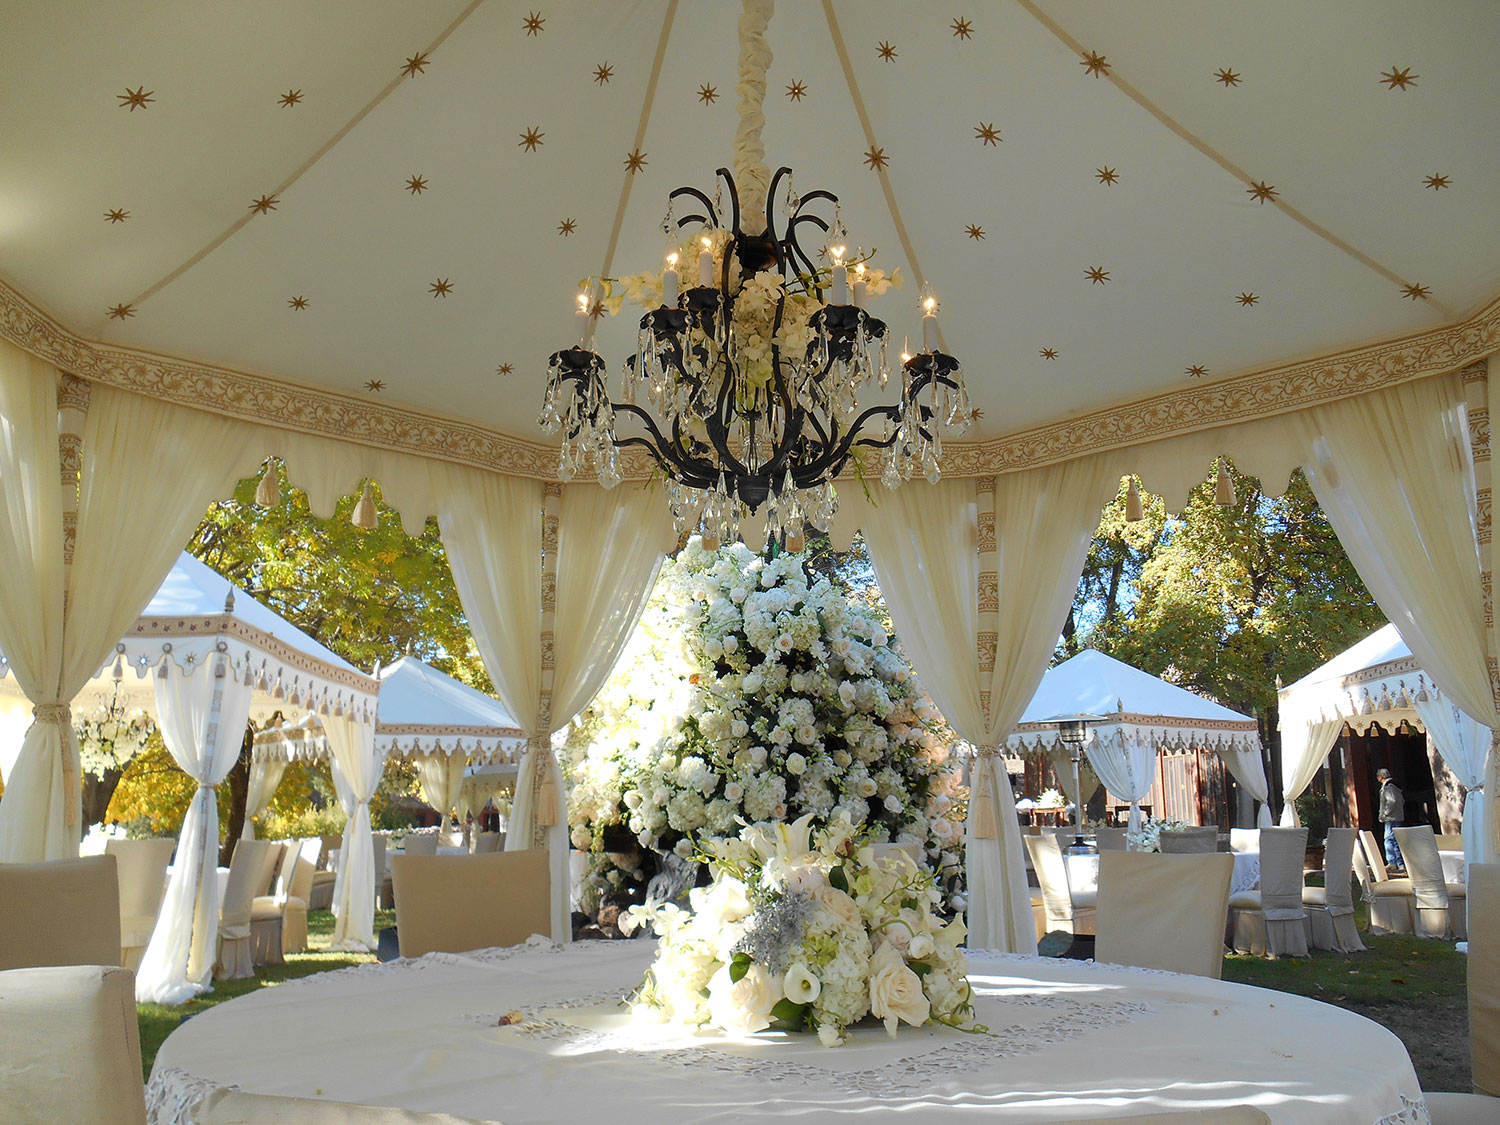 raj-tents-old-hollywood-theme-elegant-white.jpg